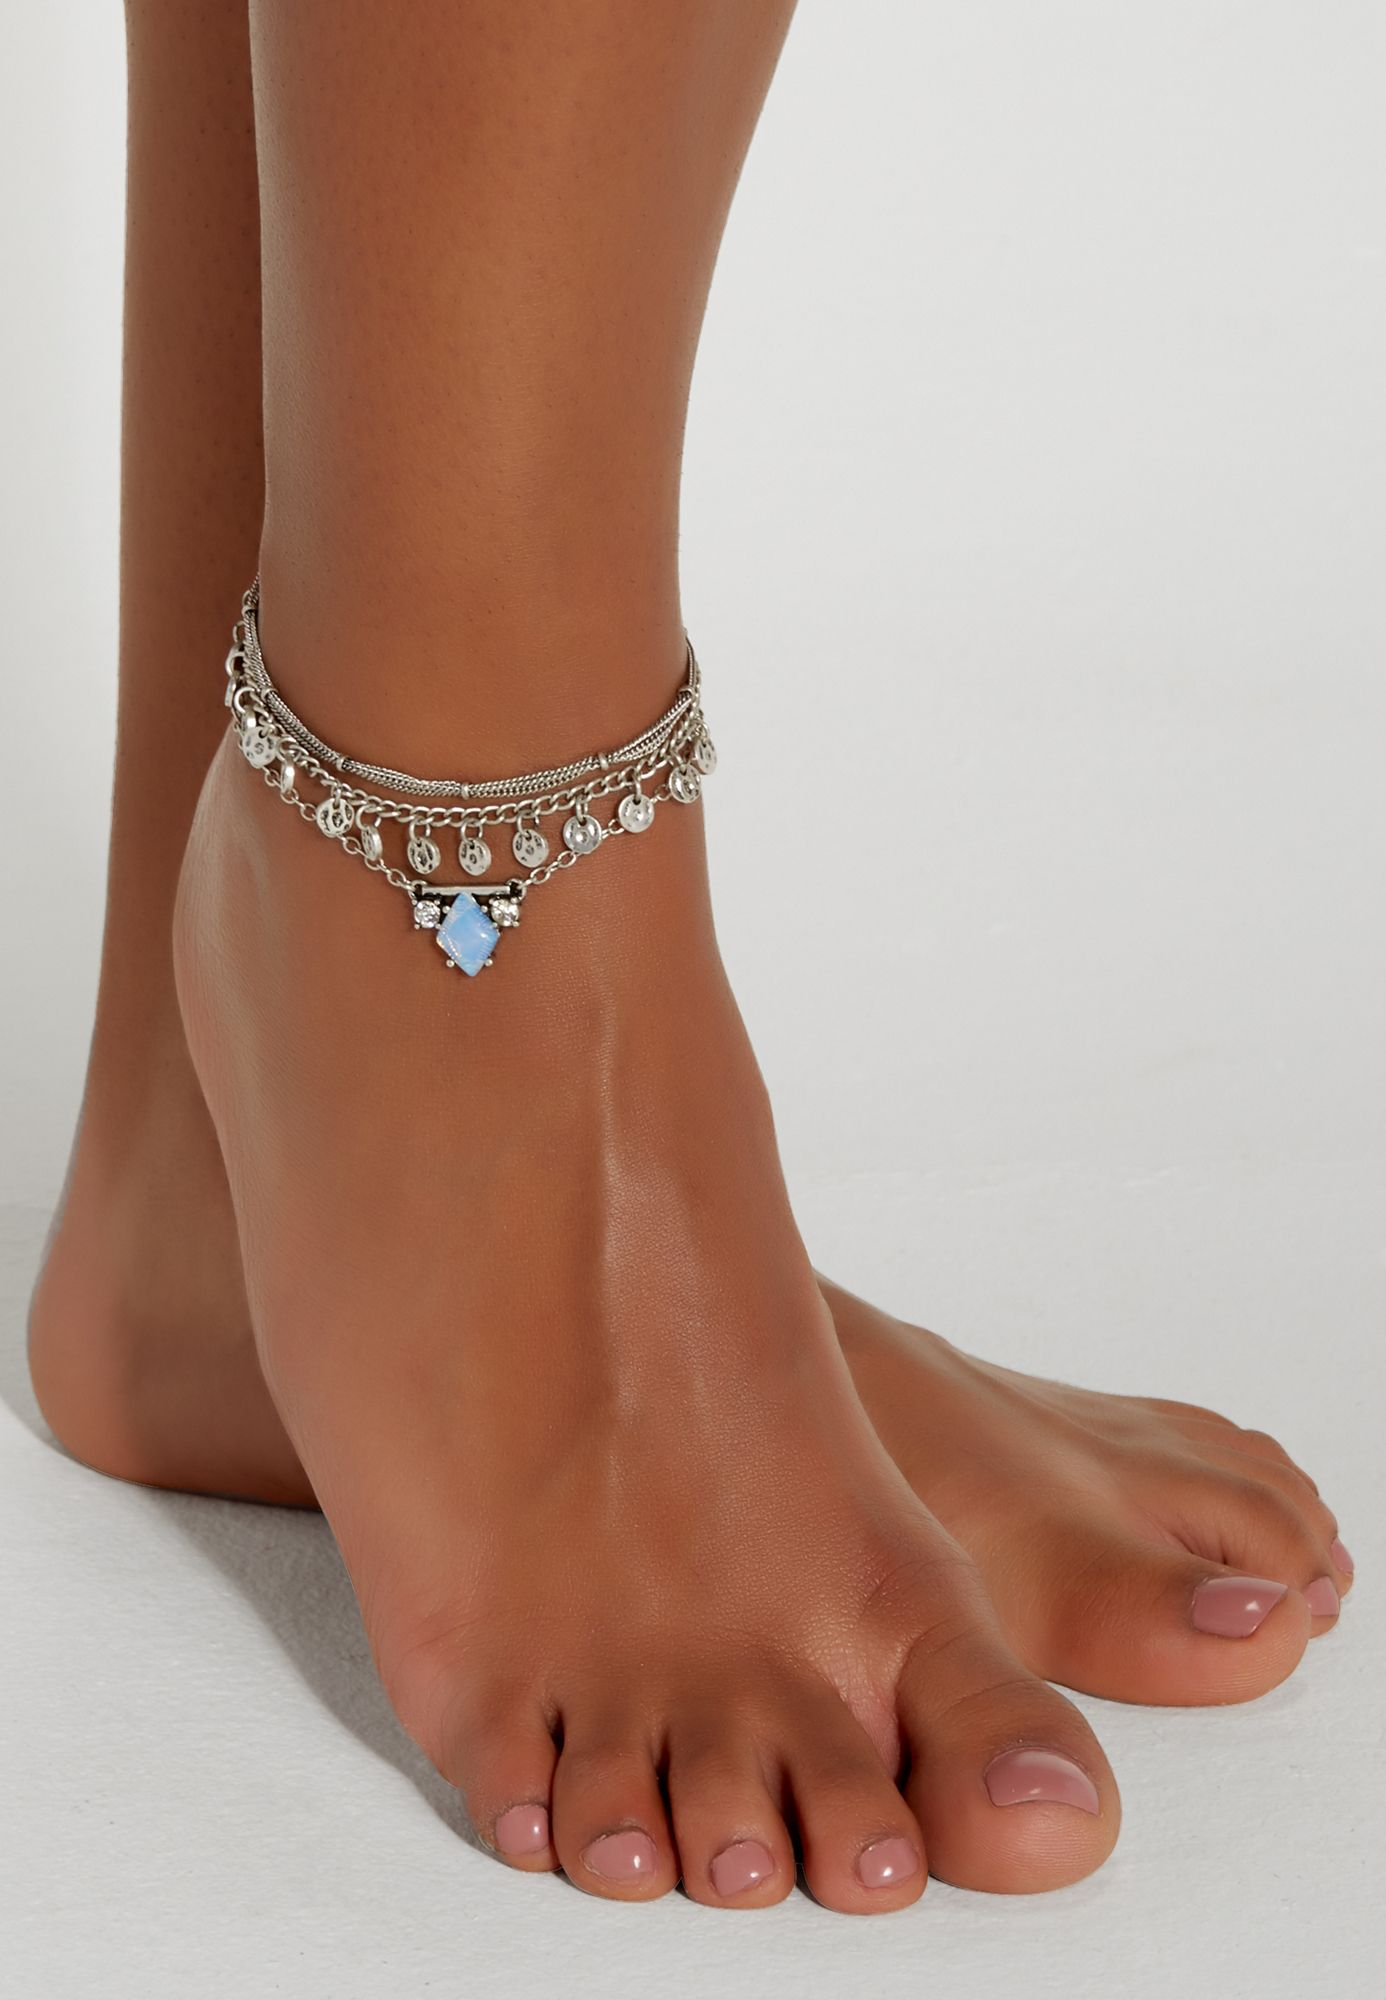 for beach name big foot anklet size new ring anklets arrows width material circumference summer weight store wholesale product gypsy arrow design alloy bohemian extended ankles chain